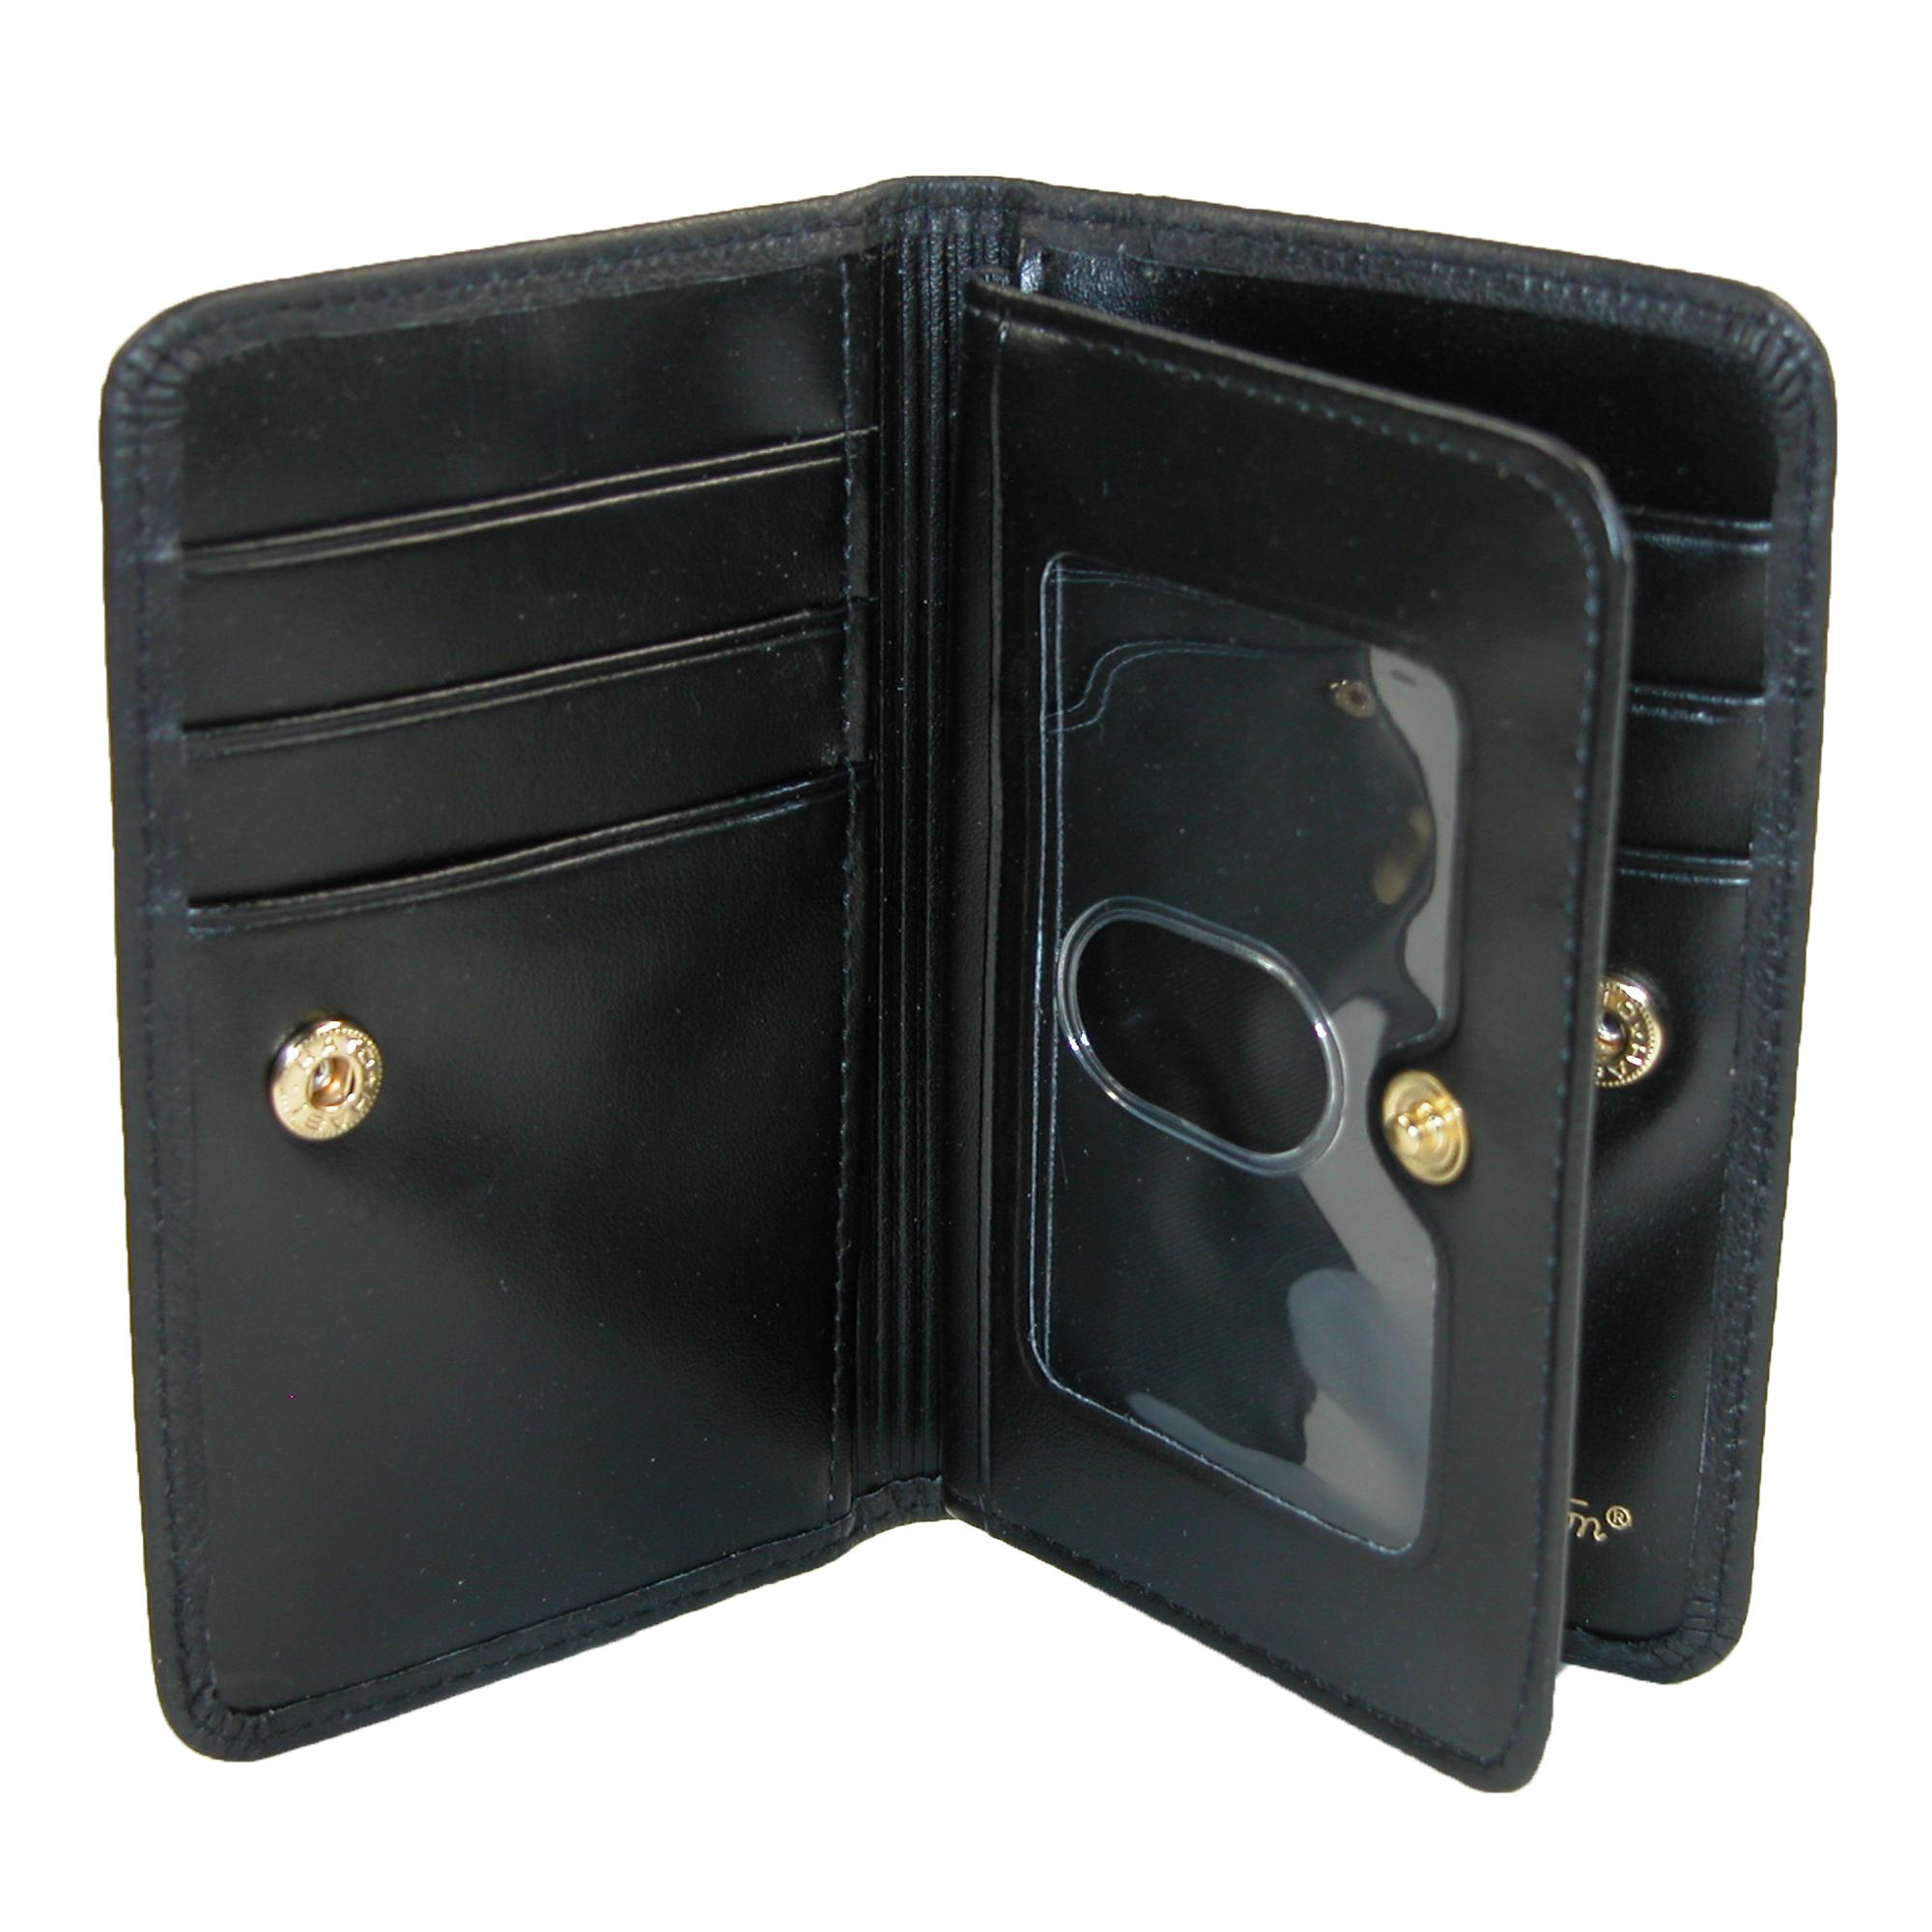 New buxton women39s leather snap card case wallet with for Buxton business card case